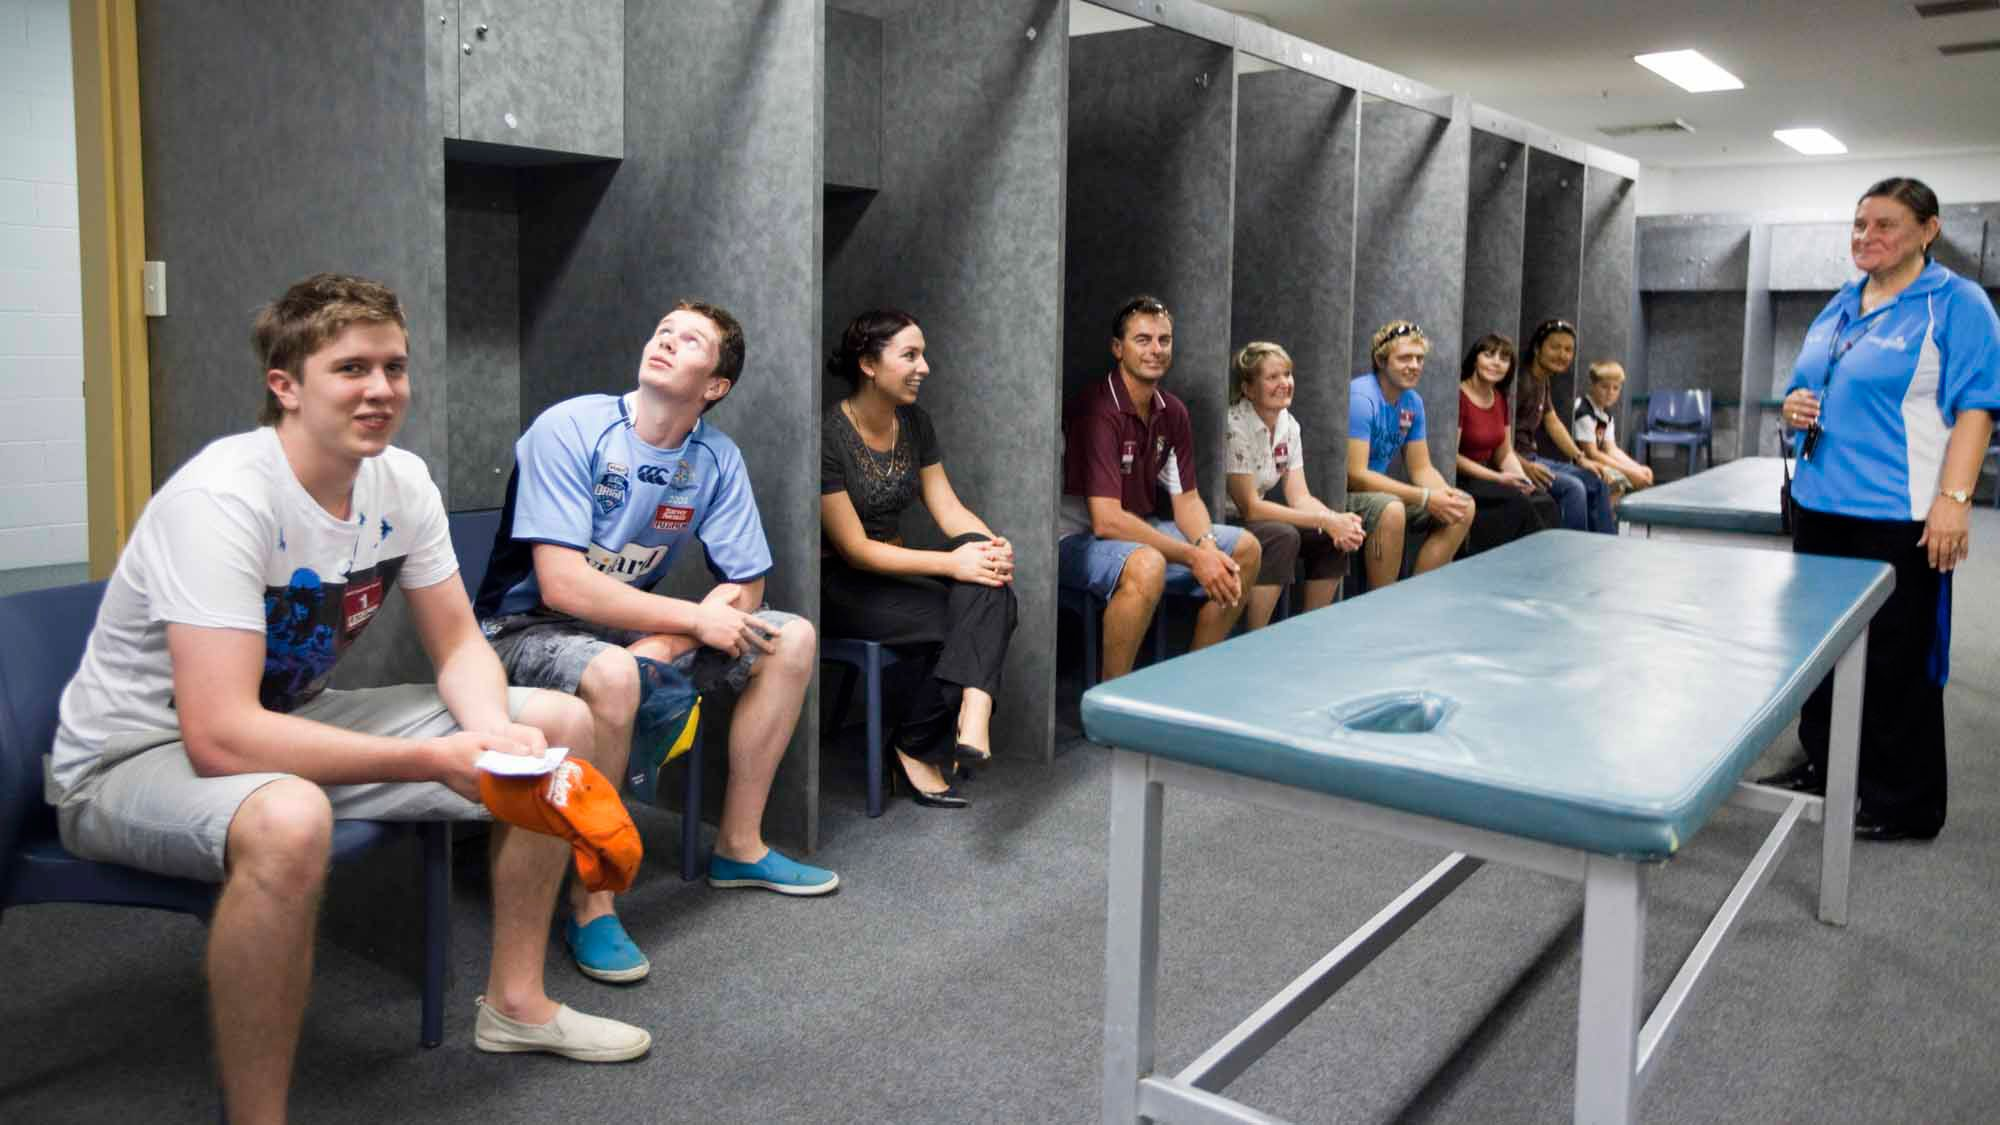 Many people sitting in locker room of stadium in Canberra